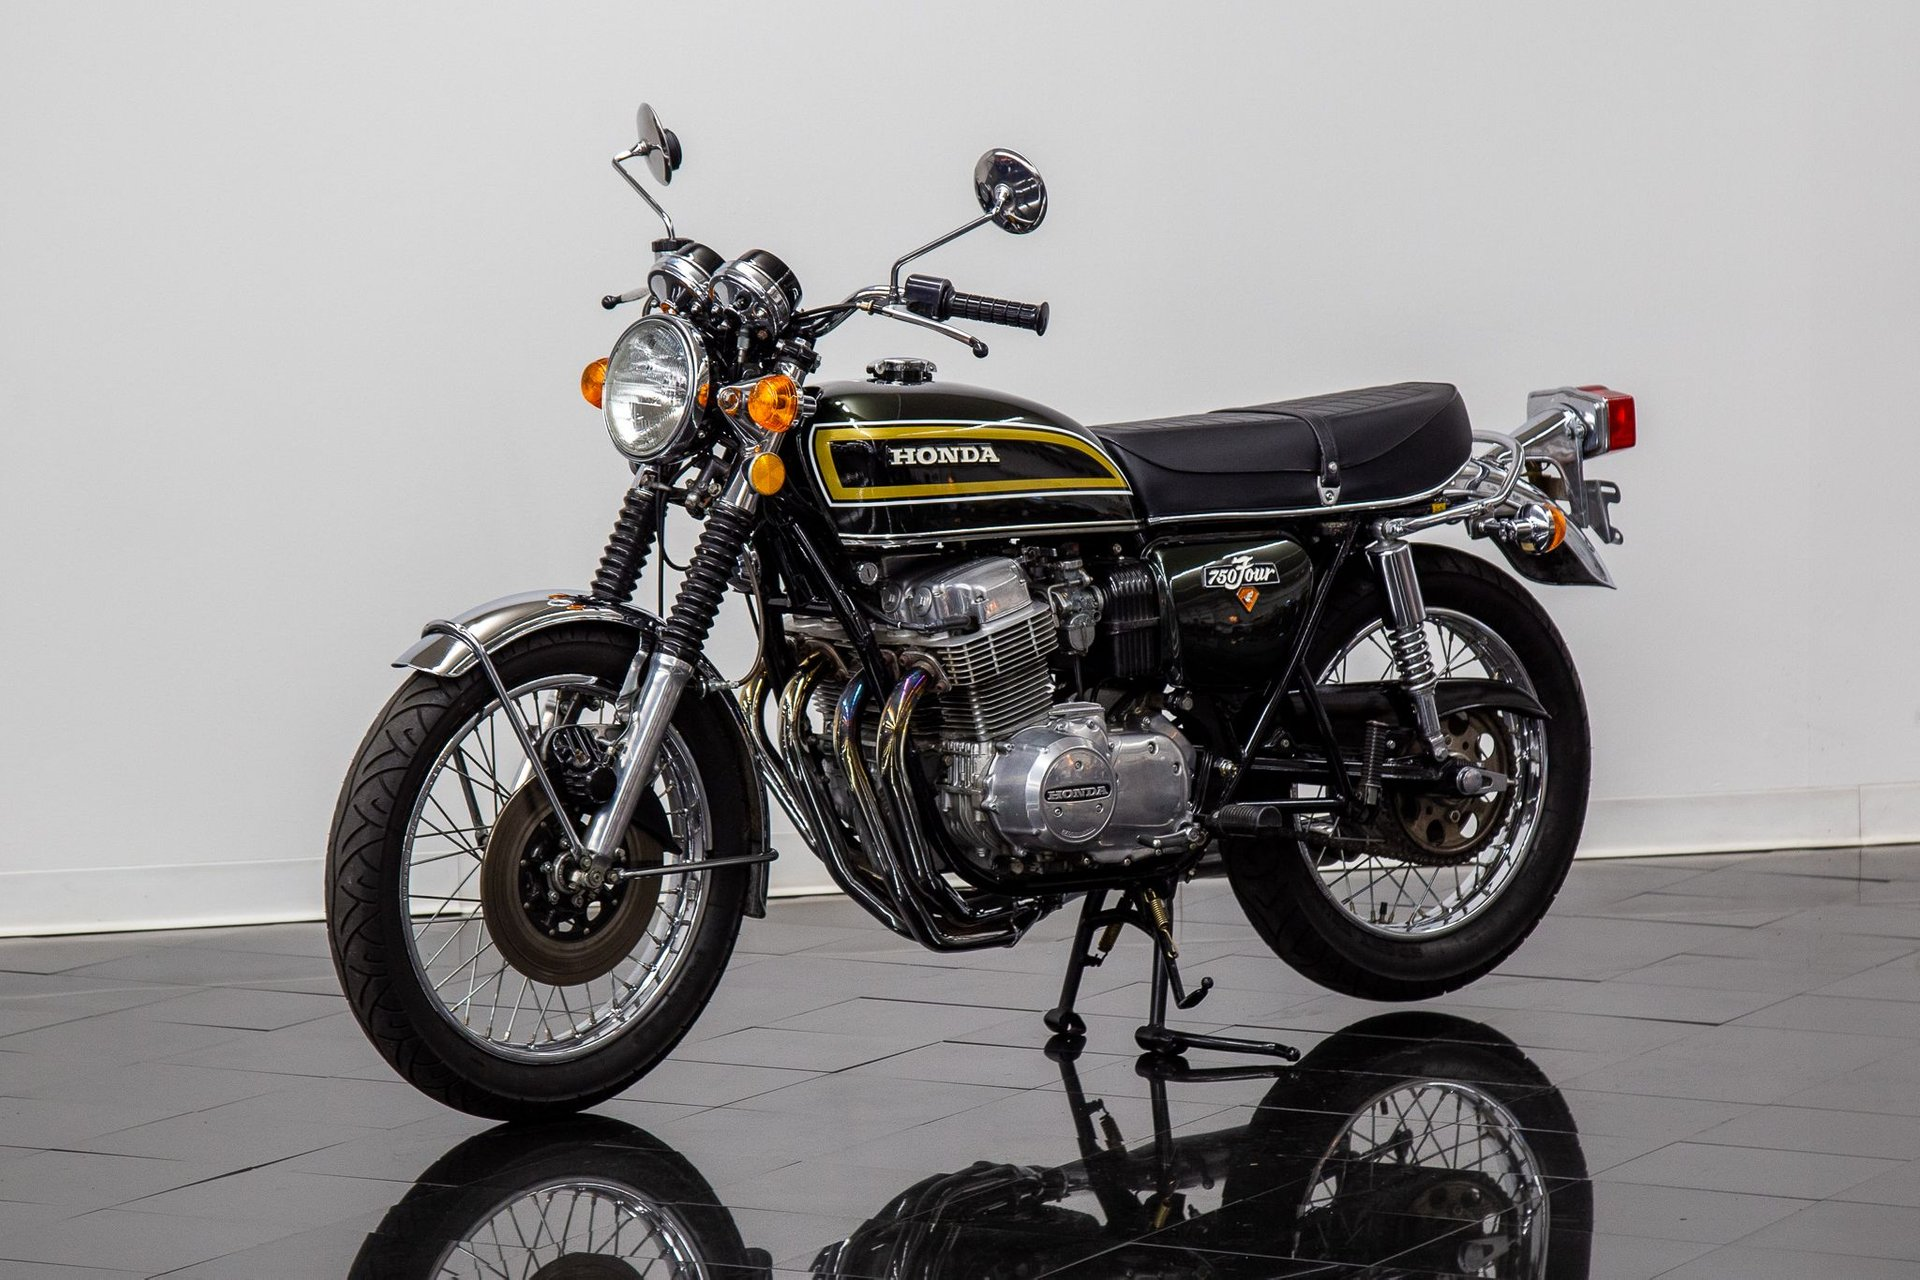 1973 honda cb 750 four motorcycle